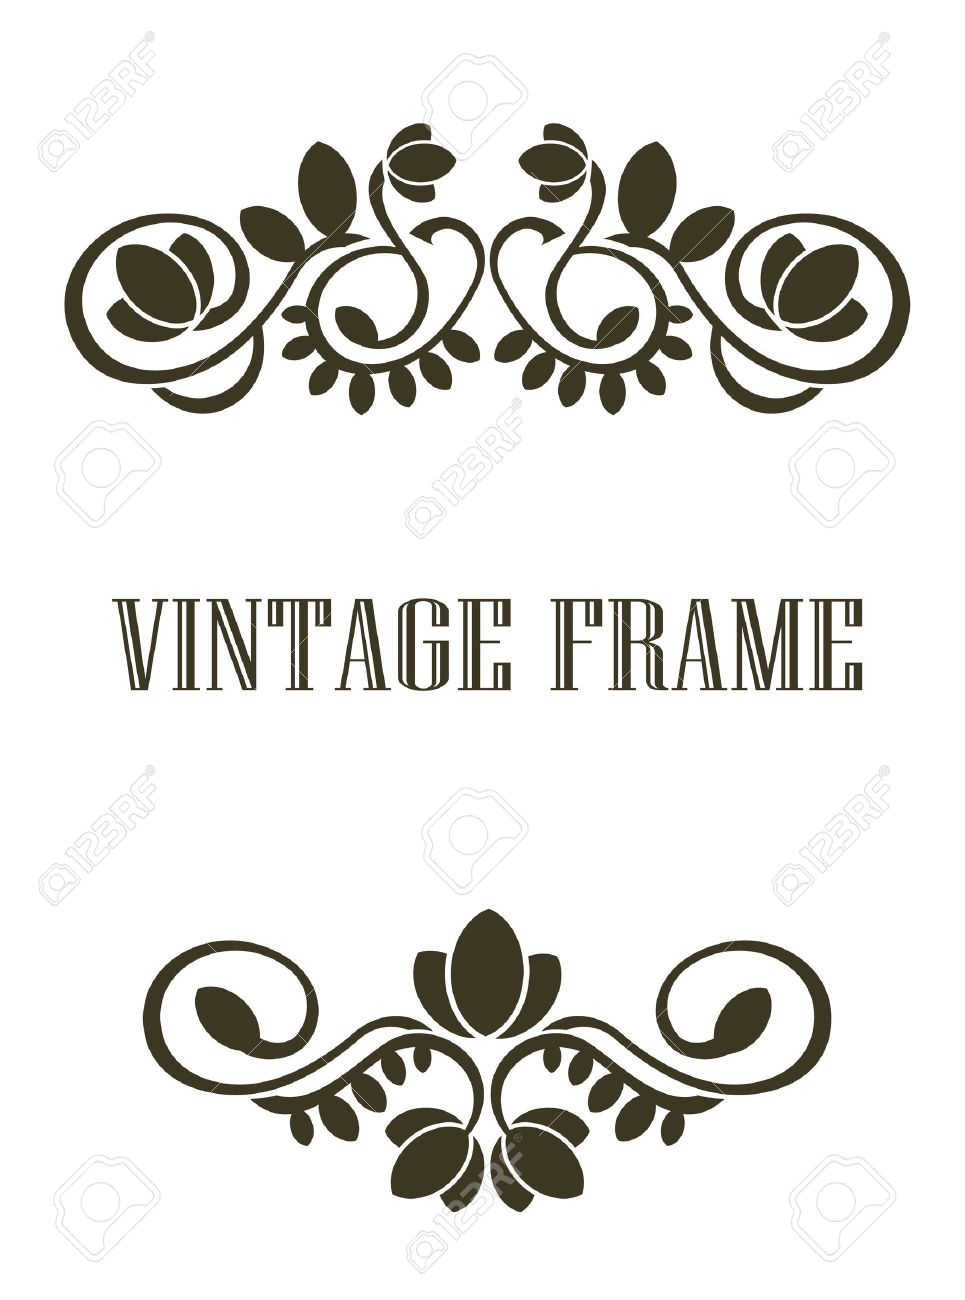 Black And Calligraphic Vintage Frame Border Elements Or Header Footer With A Swirling Floral